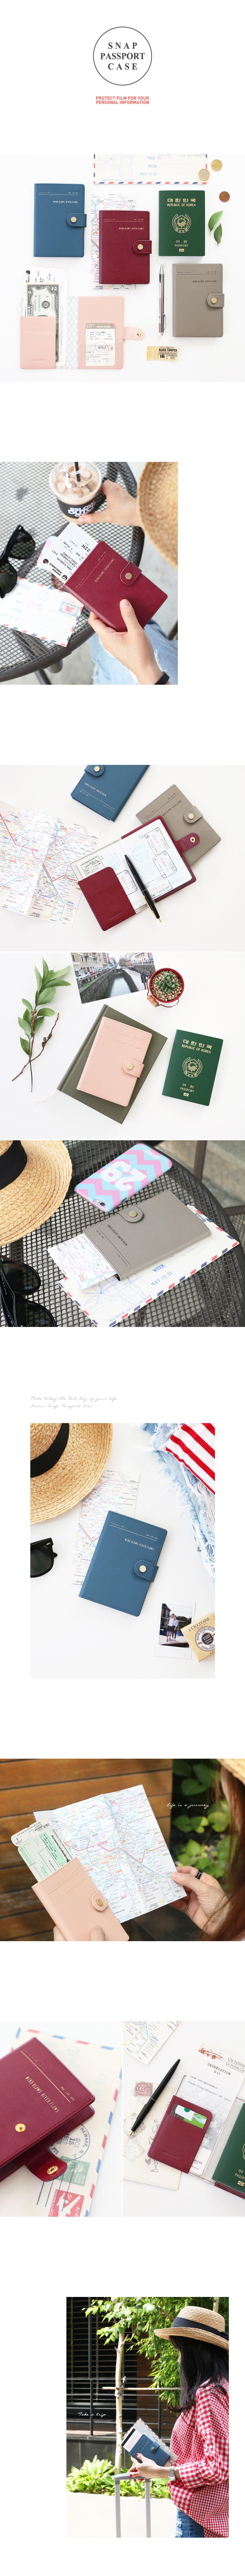 snap-passport-case-5.jpg